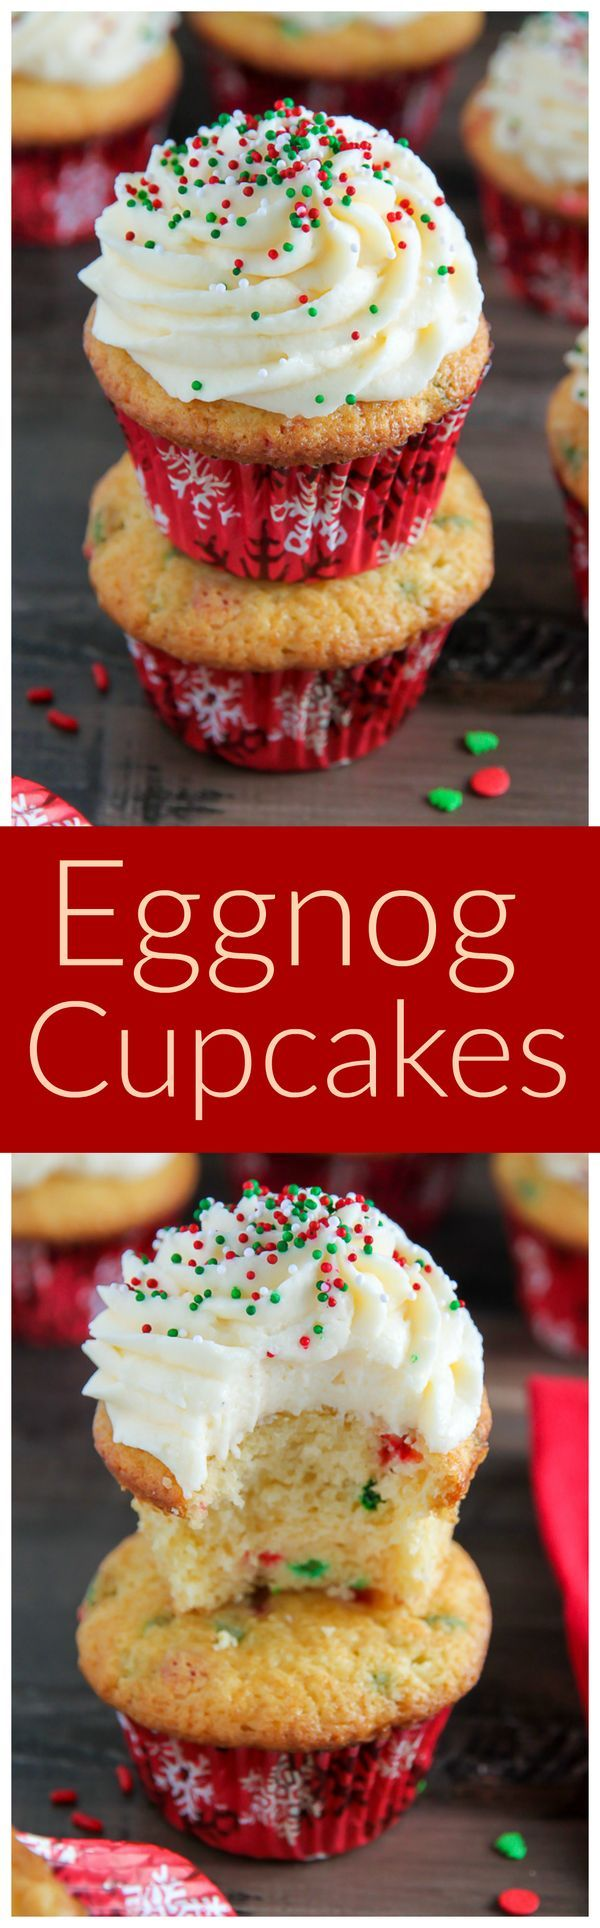 4 Eggs, large. 1 tbsp Baking powder. 2 5/8 cups Bob's red mill all-purpose flour. 4 cups Confectioners' sugar. 6 tbsp Cornstarch. 2 cups Granulated sugar. 1 tsp Salt. 2 tbsp Vanilla. 2 sticks Butter, unsalted very soft and cut into small cubes. 2 sticks Butter, unsalted very soft. 1/4 cup Sour cream, full-fat. 1/4 cup Holiday nonpareils. 1 cup Eggnog, full-fat. 1/4 cup Eggnog. 1/3 cup Holiday jimmies.